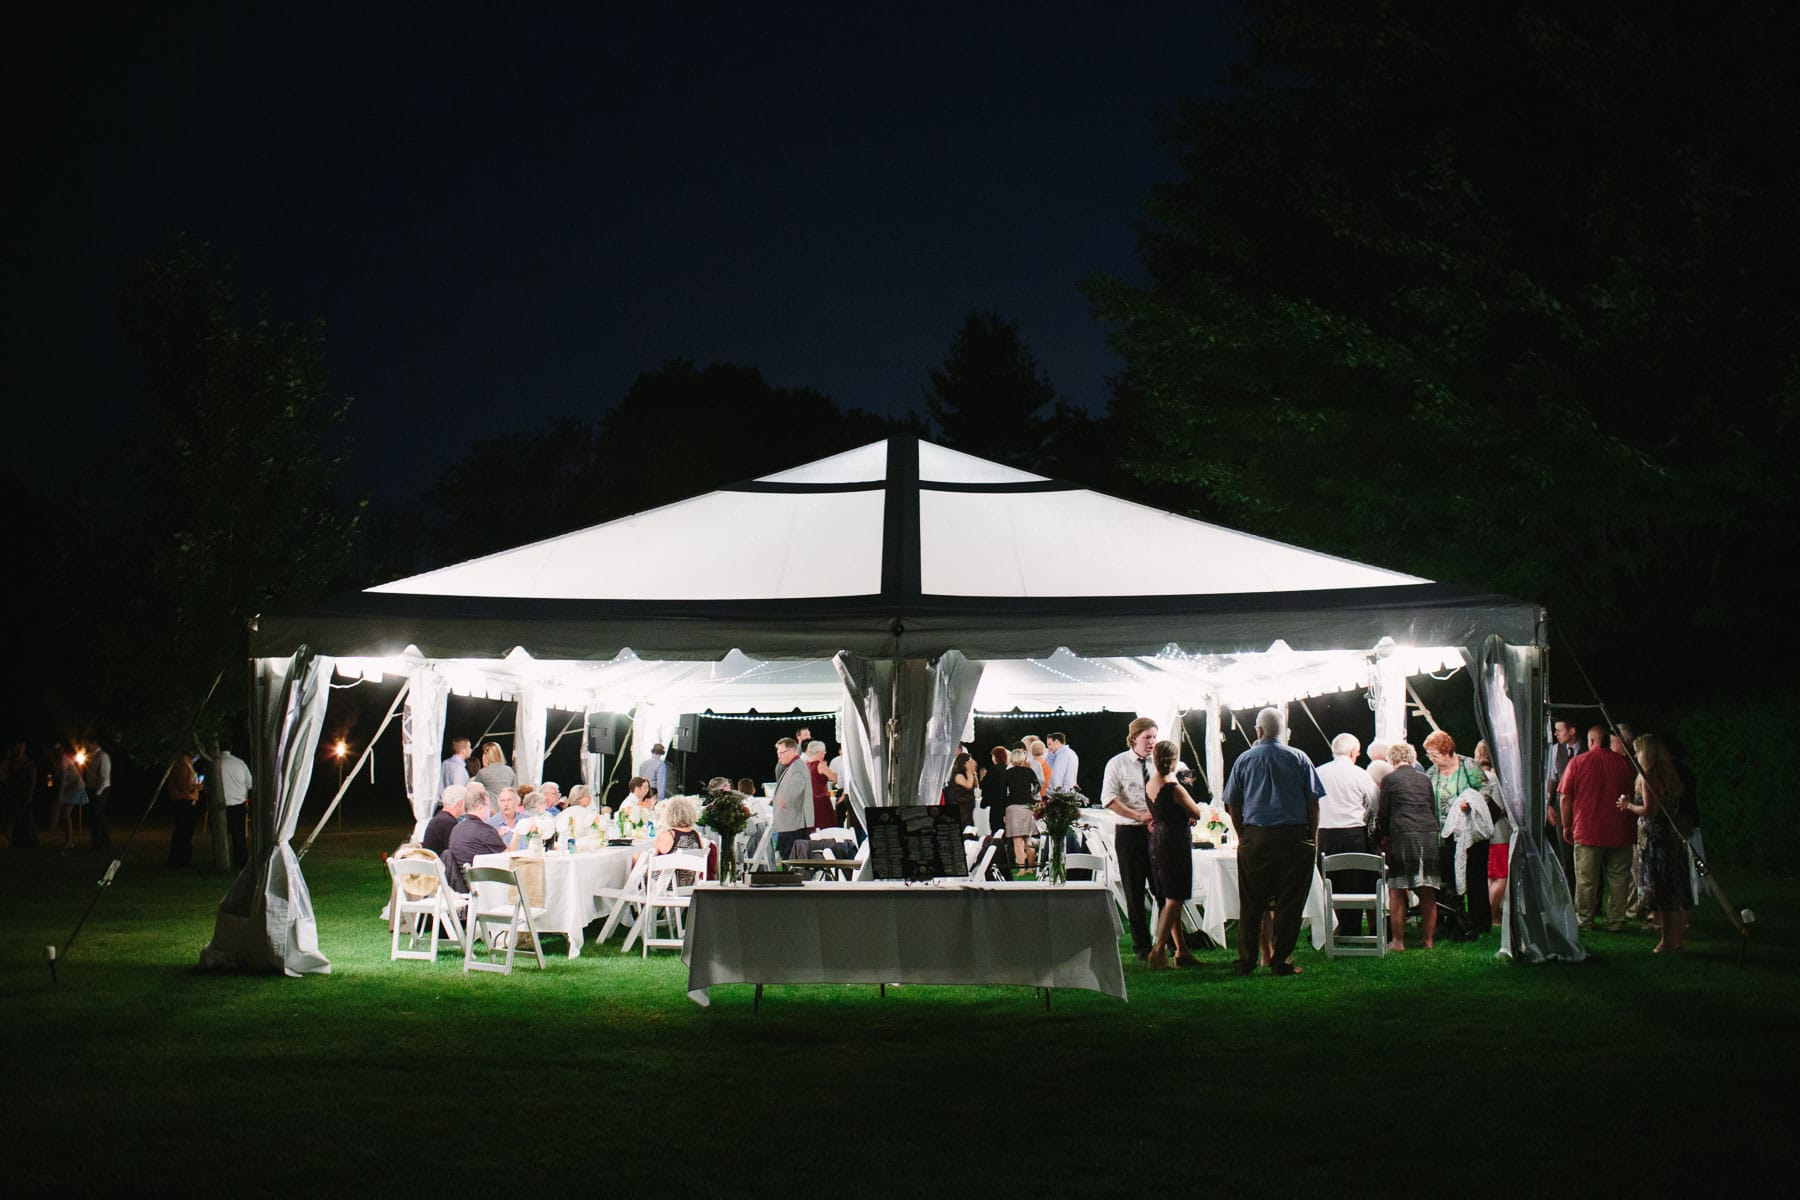 A bright temporary tent at the end of the night full of guests in these backyard wedding photos.